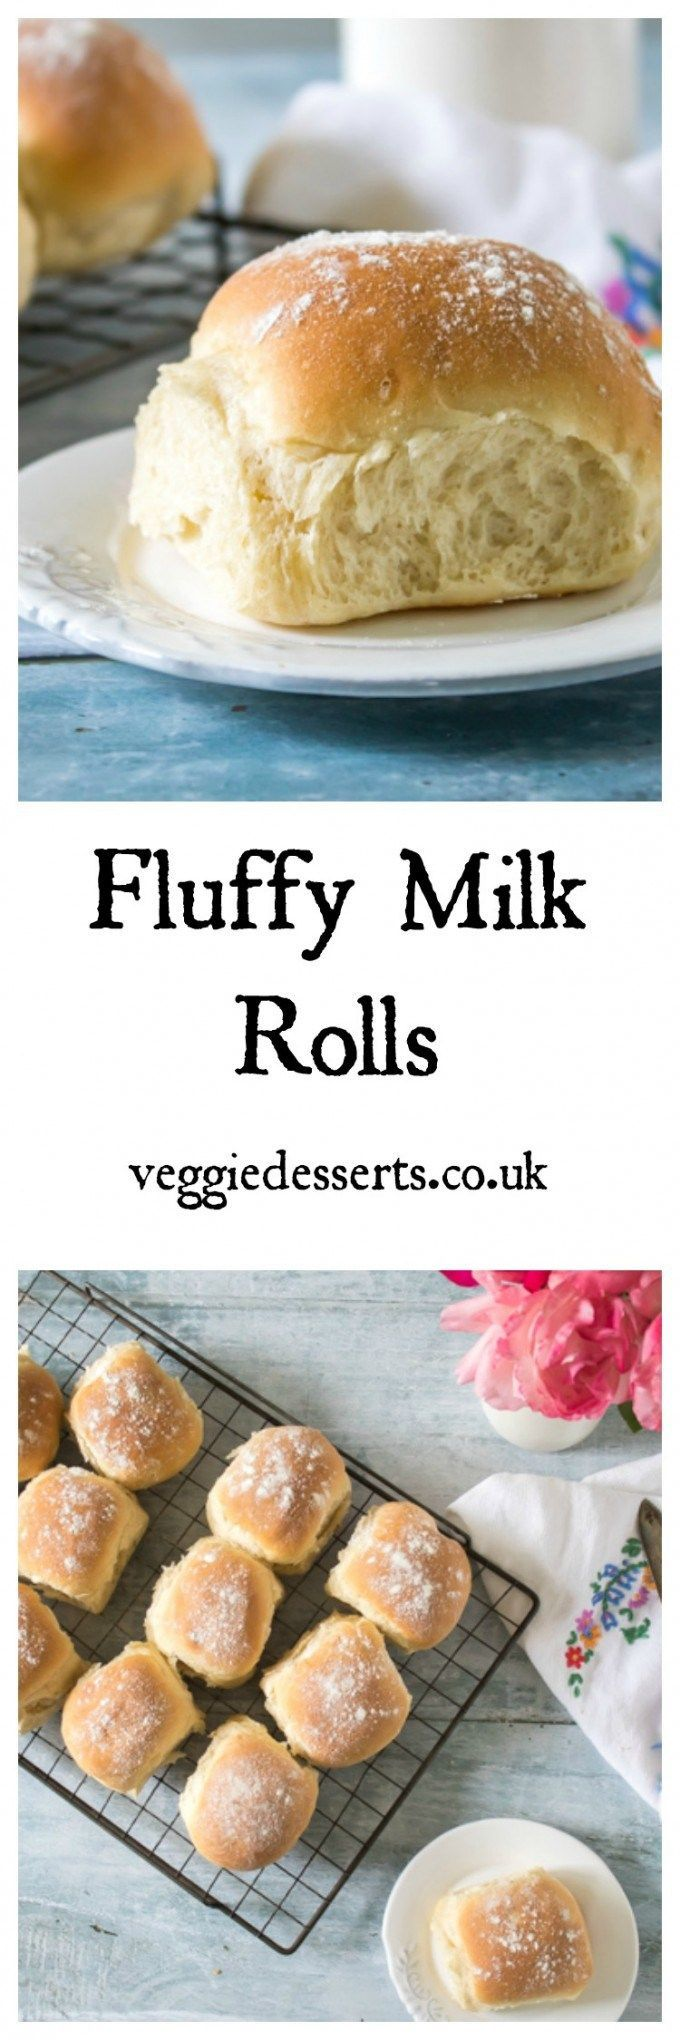 Fluffy Milk Rolls Recipe | Veggie Desserts Blog